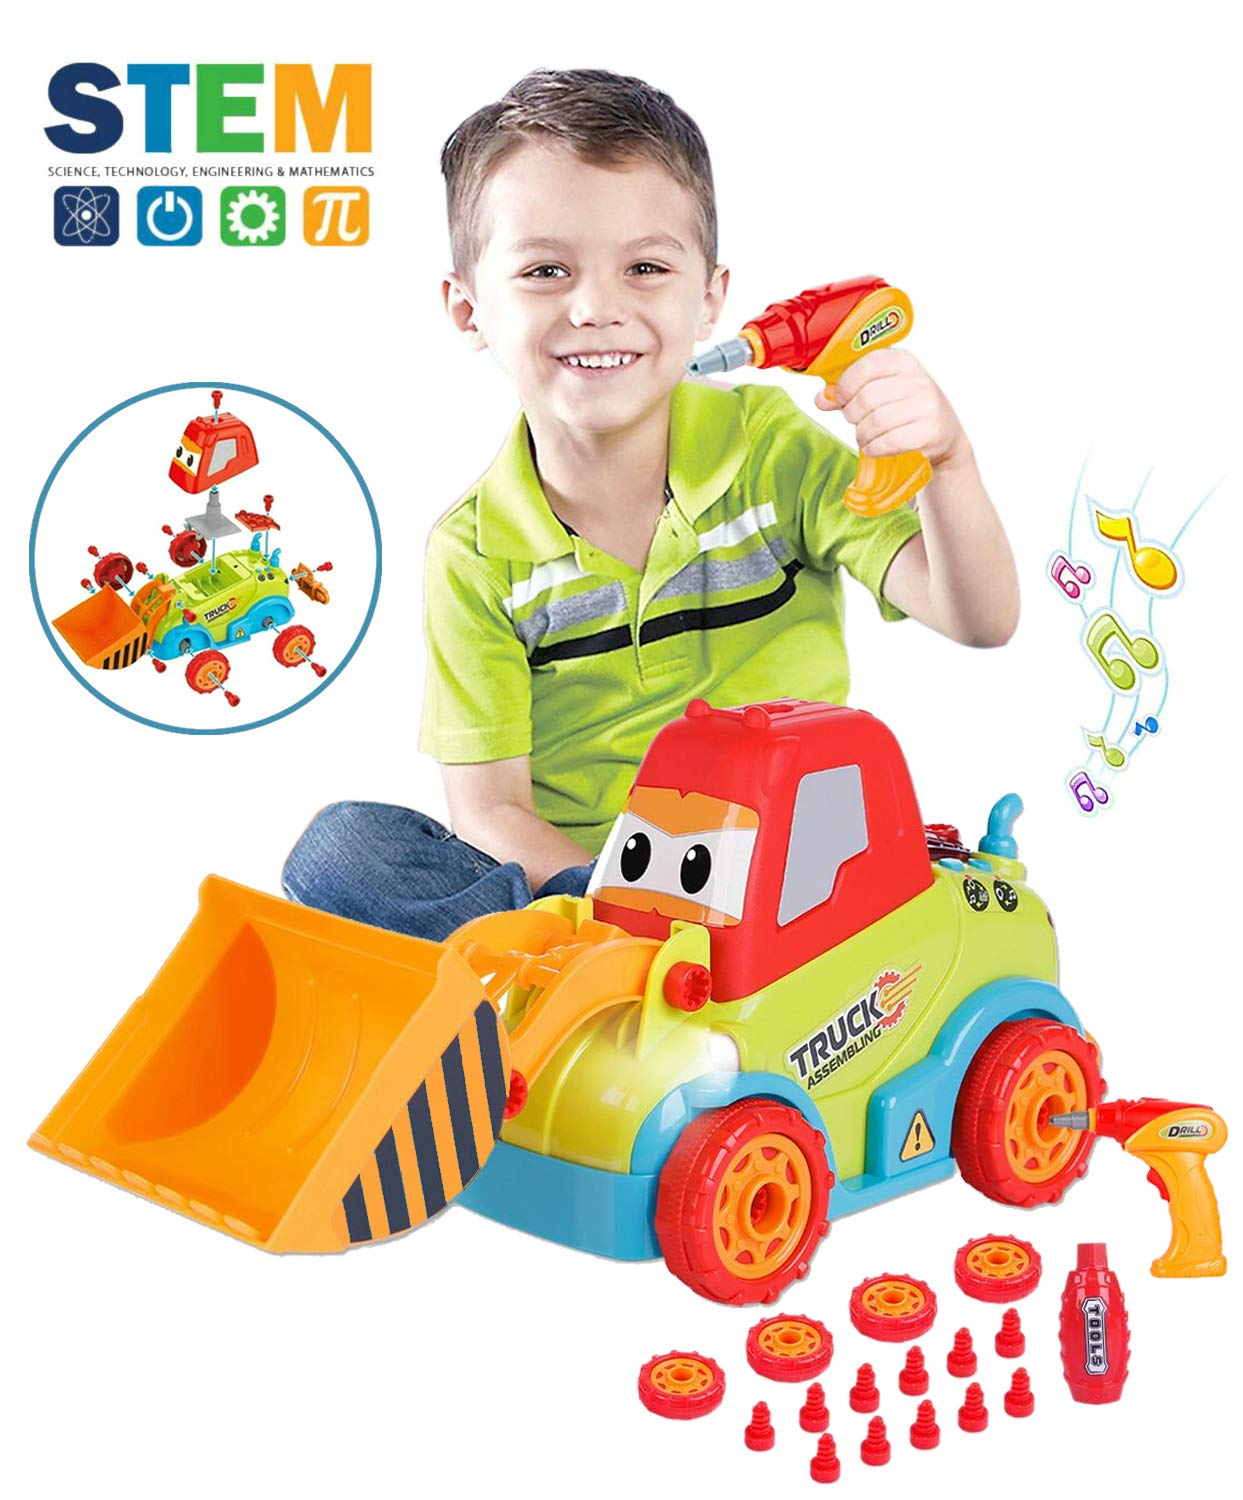 LUKAT Take-a-Part Toys Truck, Assembly Toy Car Truck, Construction Bulldozer Toys 3-4-5 Years Old Boys Girls, DIY Toddler Toys Music, Lights Drill Tool, Gift Kids 3-4-5 Year Old FanLong Tech